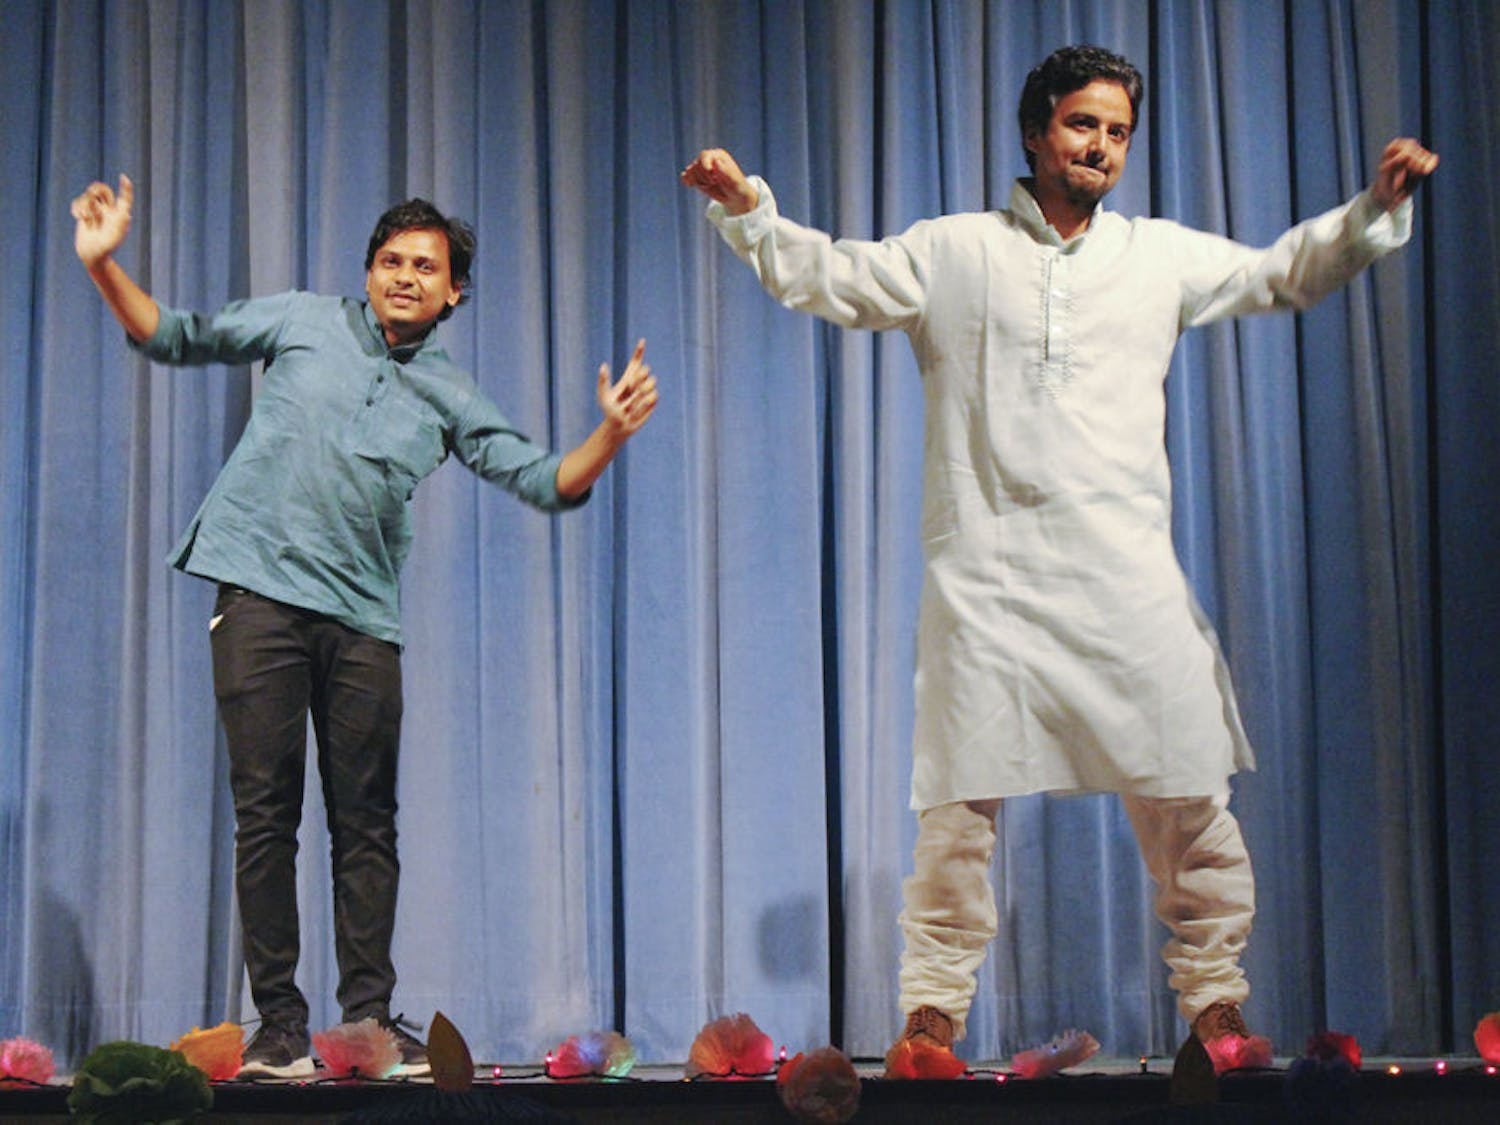 Biswas Rijal, right, a UF materials science graduate student, was cajoled into doing a traditional dance from North India called bhangra in front of about 600 people celebrating Diwali at the India Cultural and Education Center on Nov. 14, 2015. He pulled his friend, Gaurav Sultania, left, a UF civil engineering graduate student, onstage with him so he wouldn't have to perform alone.